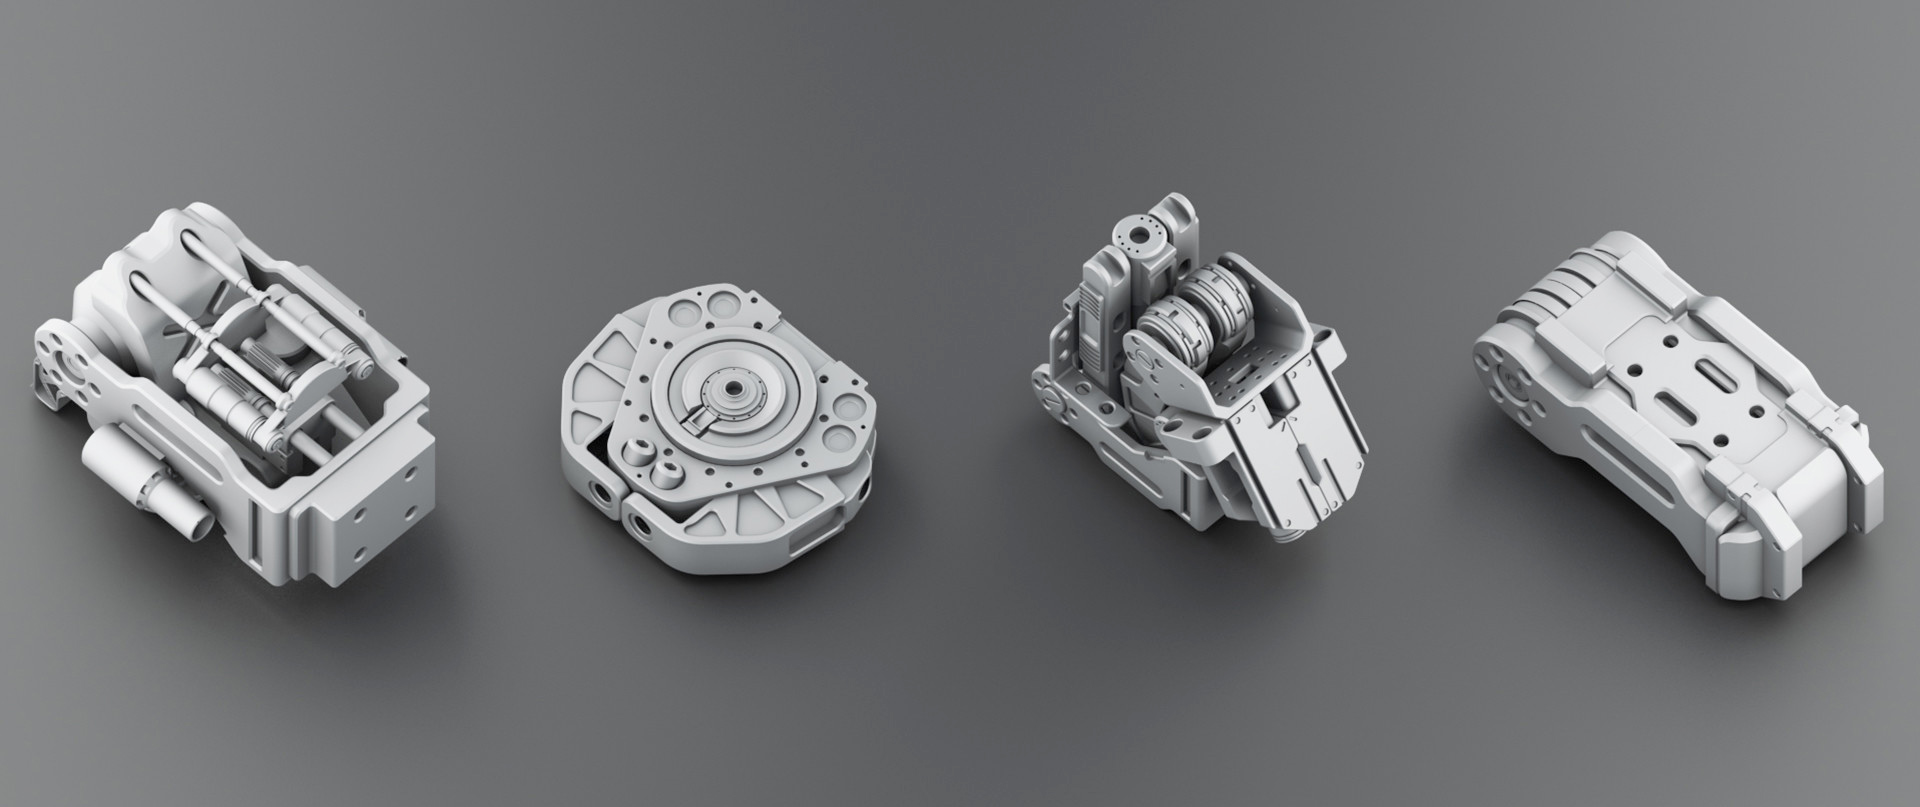 Cinema 4D: Use Kitbash 3D Models to Build a Space Colony in Octane